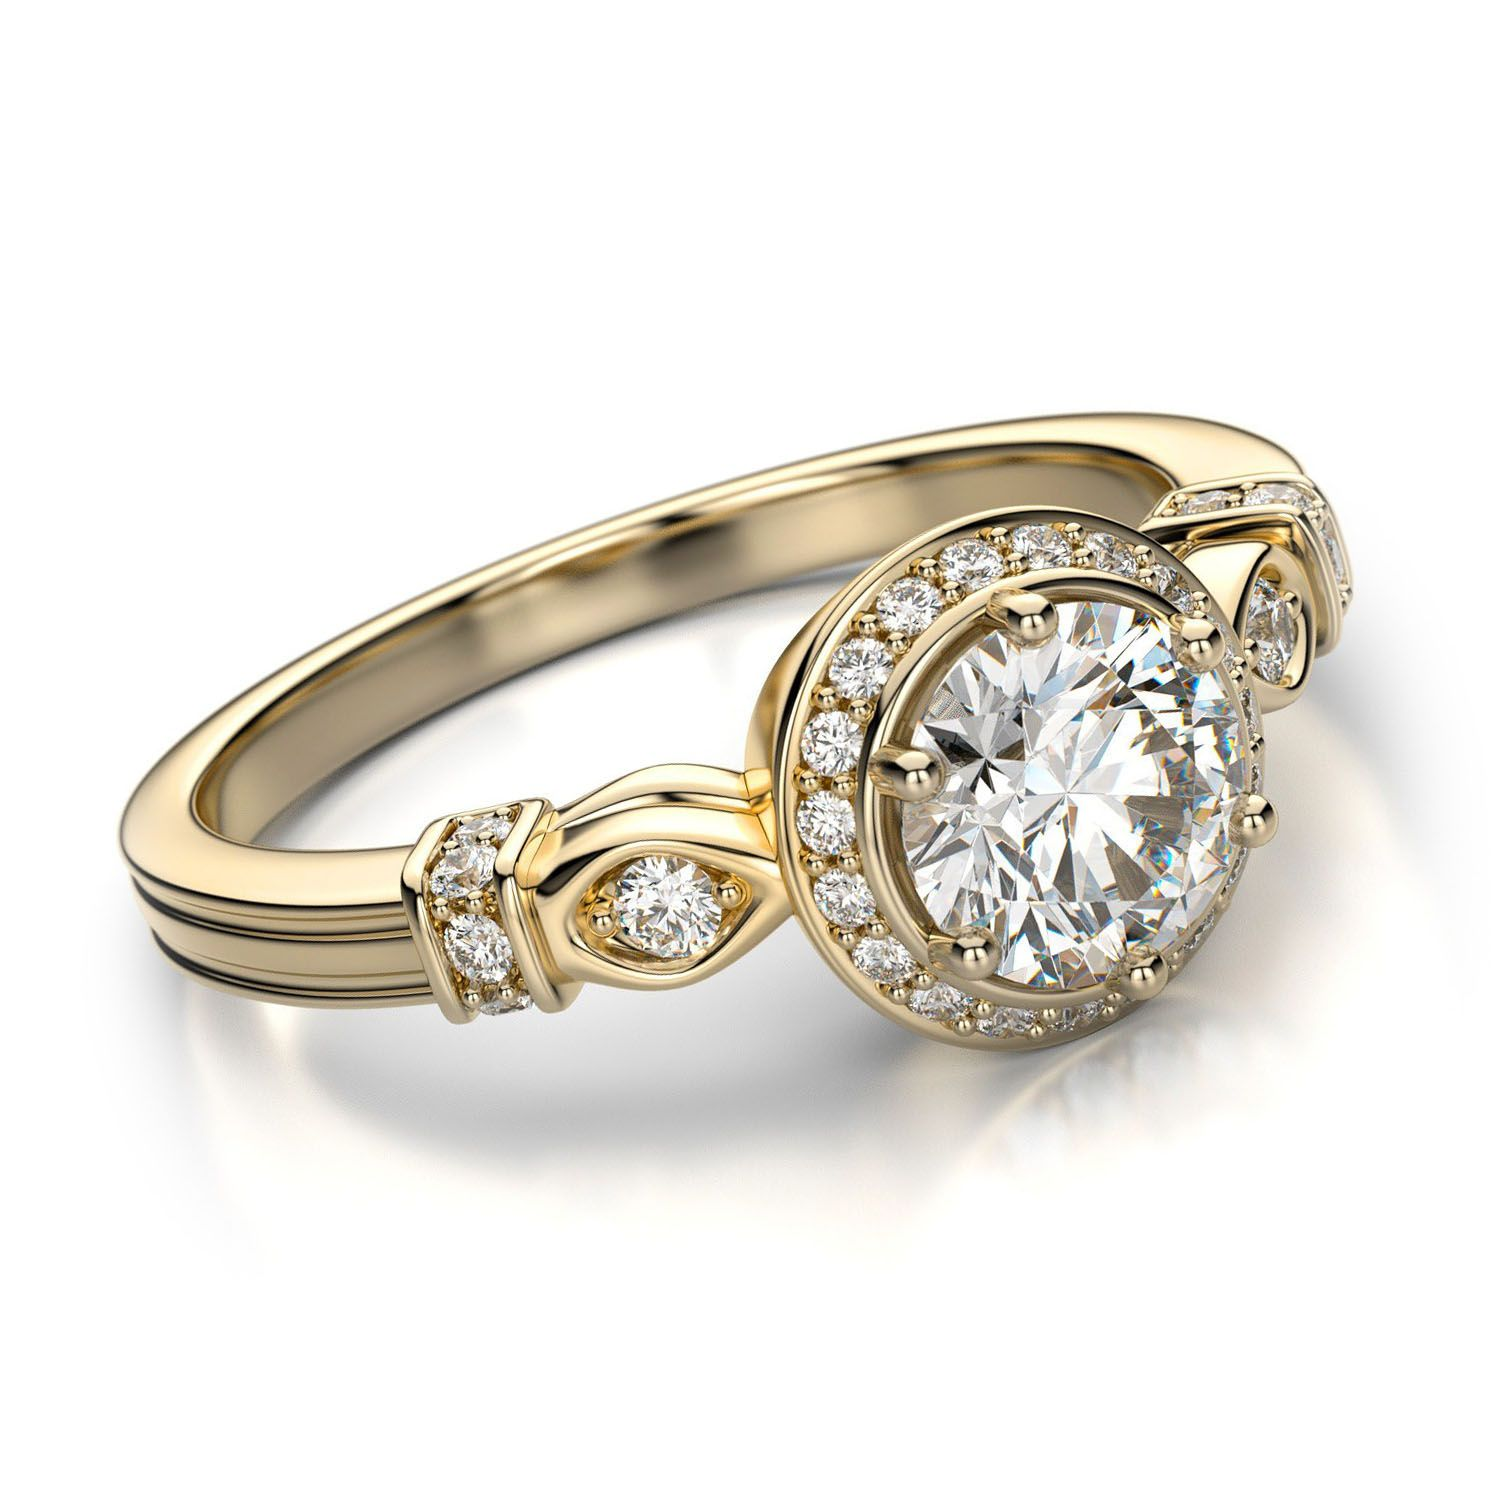 Vintage Diamond Engagement Rings For Women: Beautiful Rings Like This